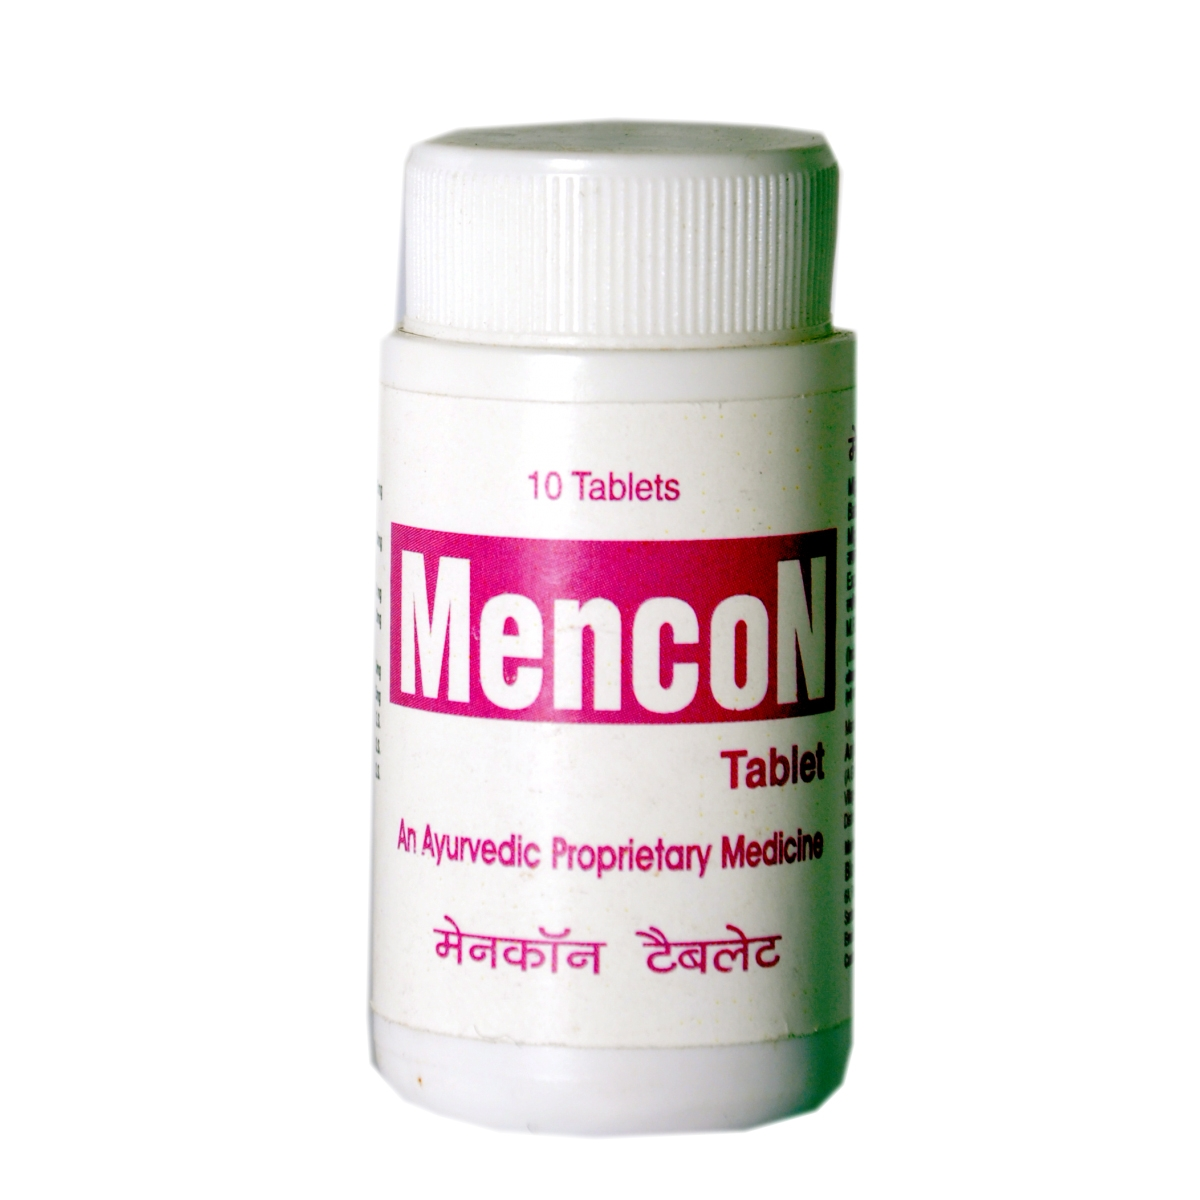 Mencon Tablet In Jalor